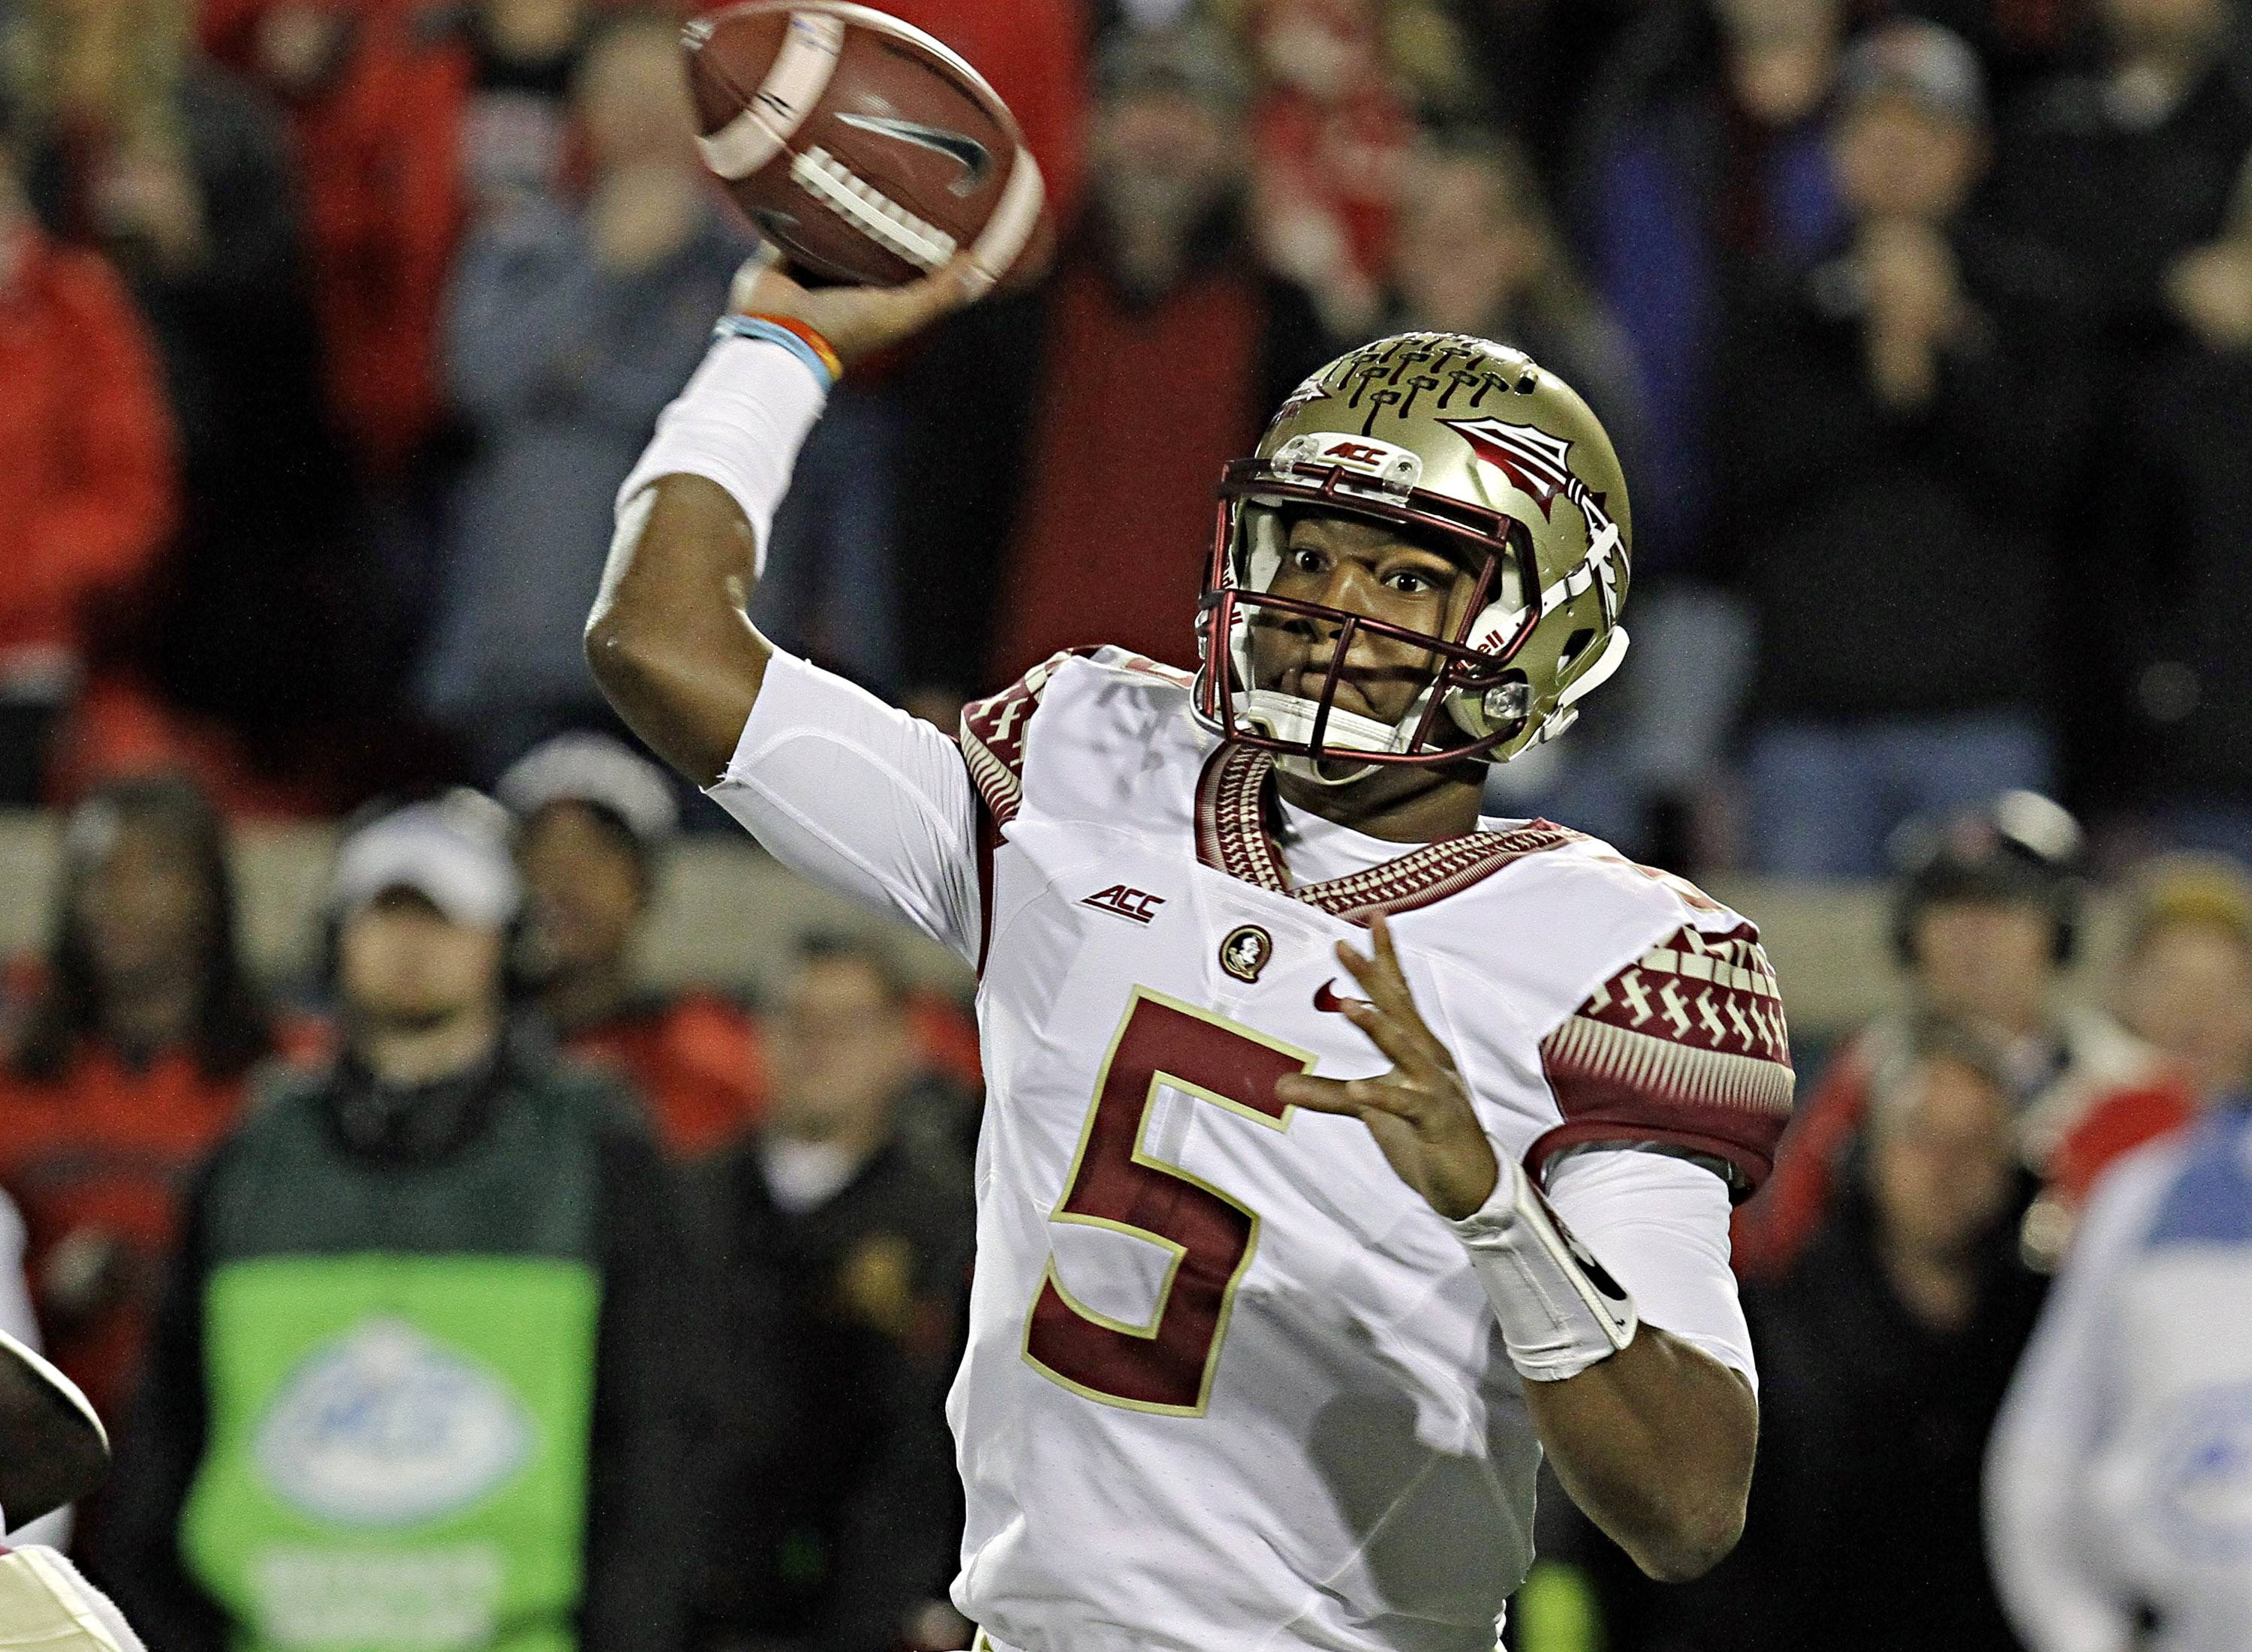 If Florida State's Jameis Winston is available when the Bears make their first-round draft pick next spring, would they take him?